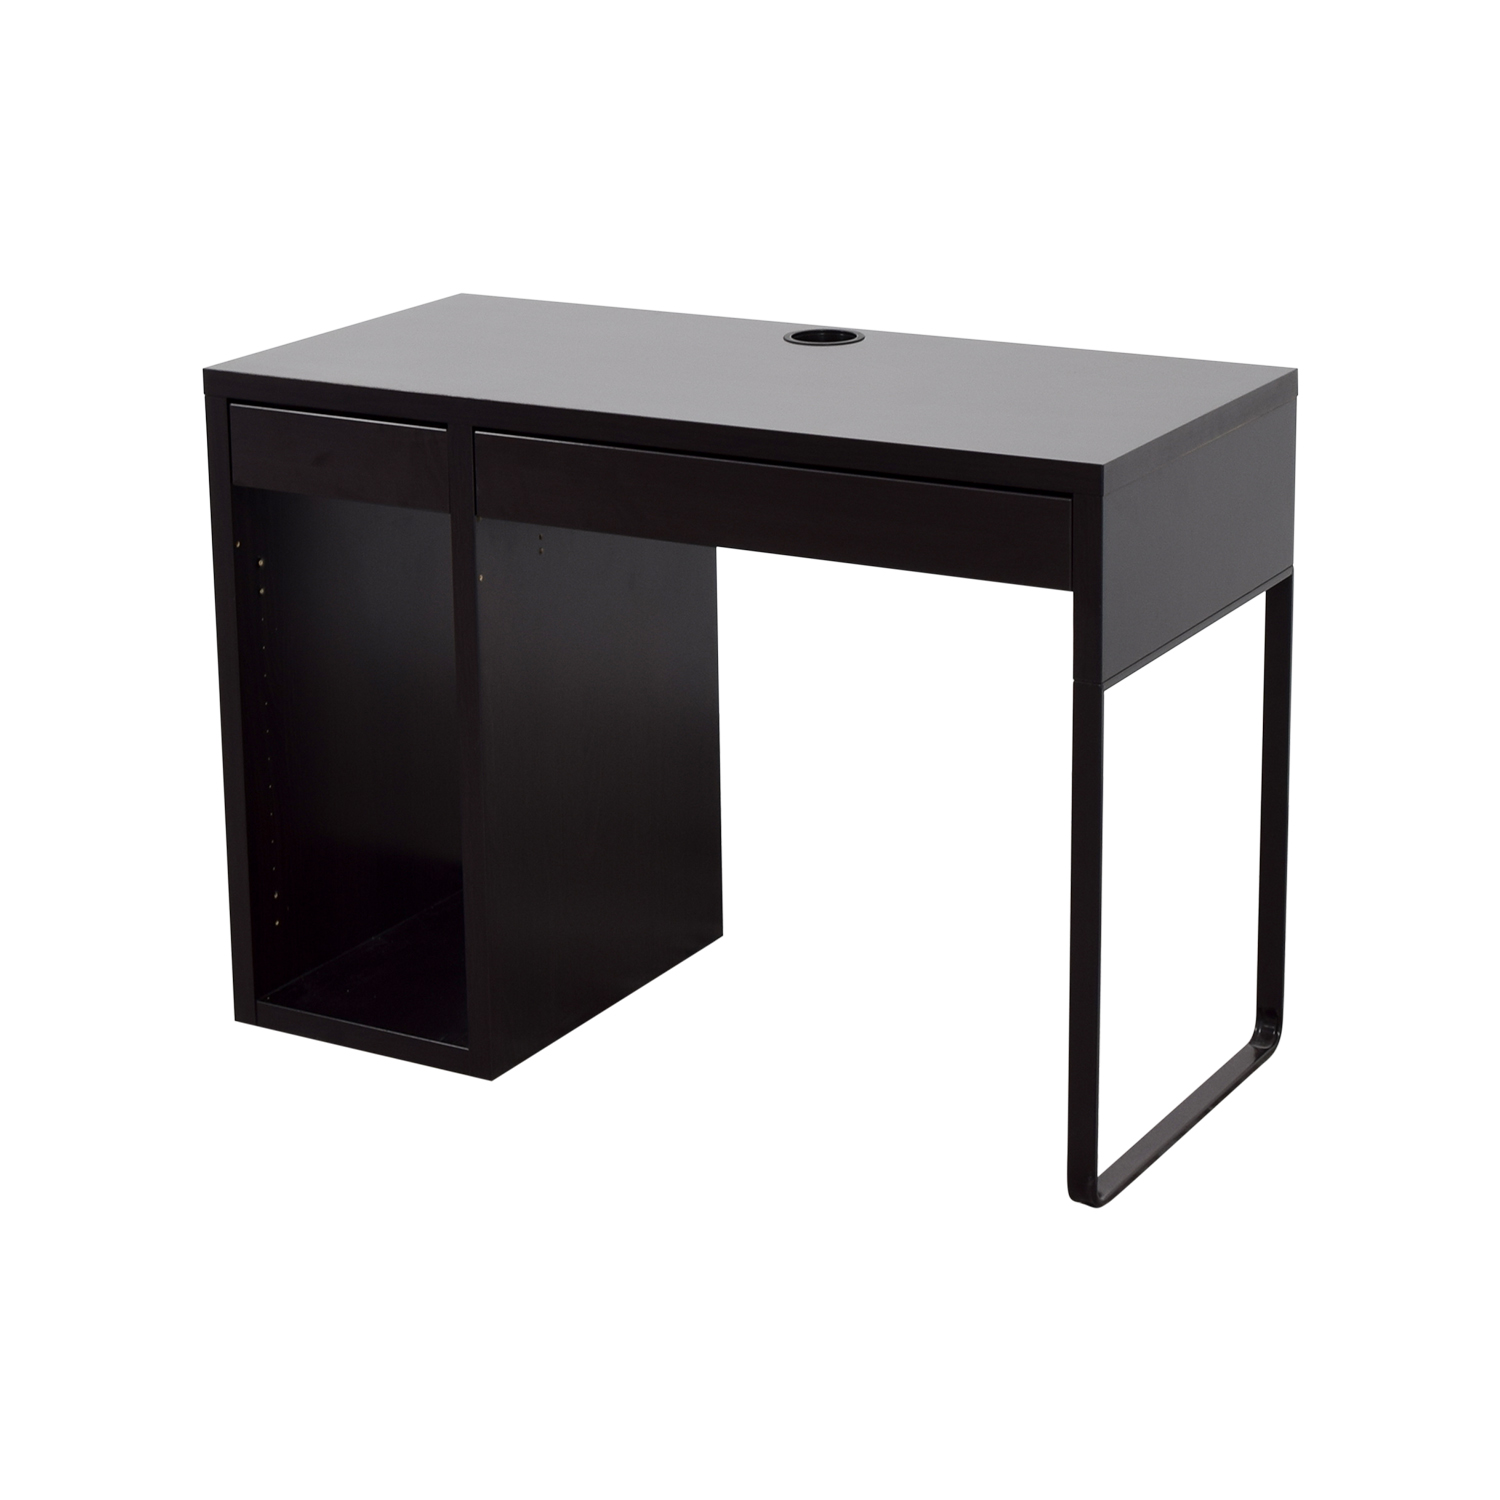 57 off ikea ikea micke two drawer desk tables. Black Bedroom Furniture Sets. Home Design Ideas